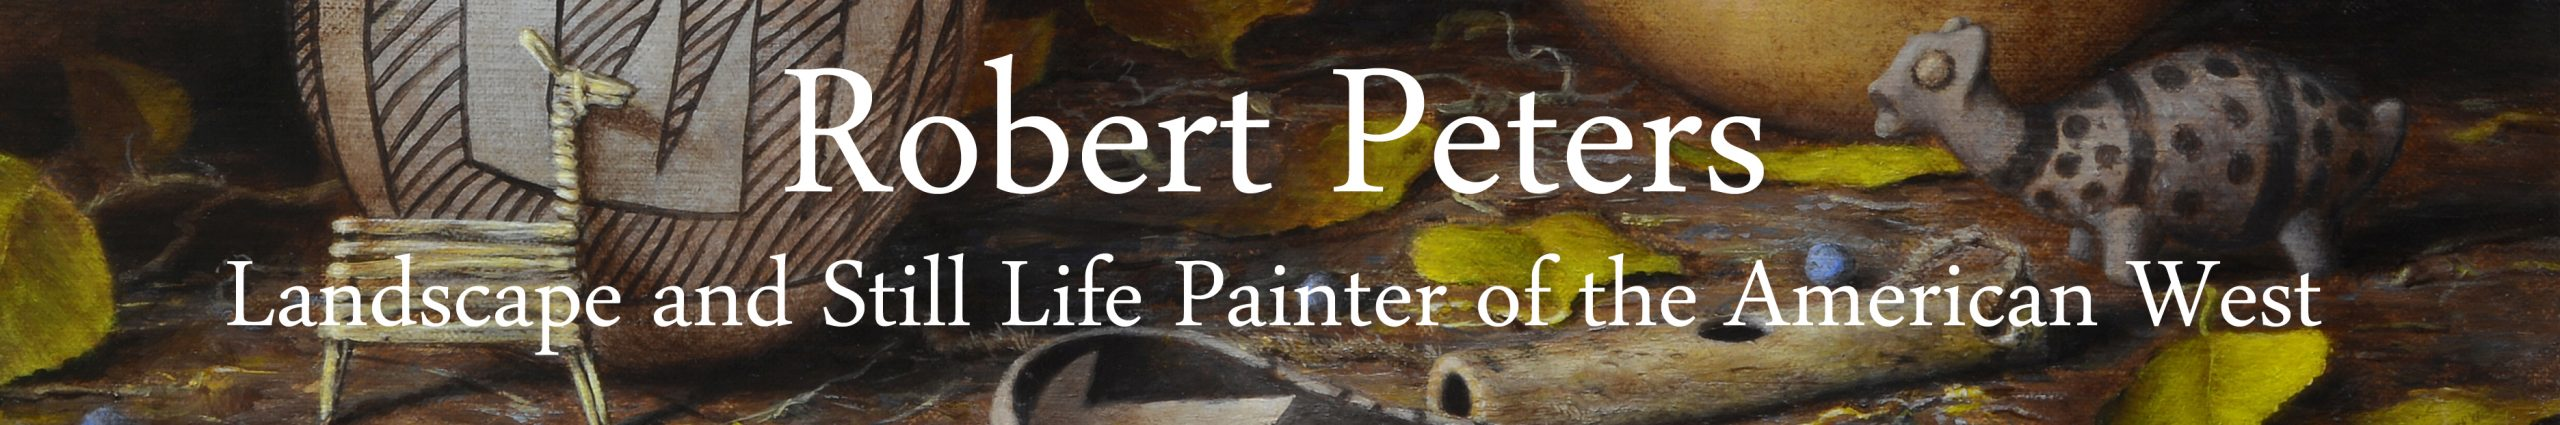 Robert Peters - Landscape and Still Life Painter of the American West